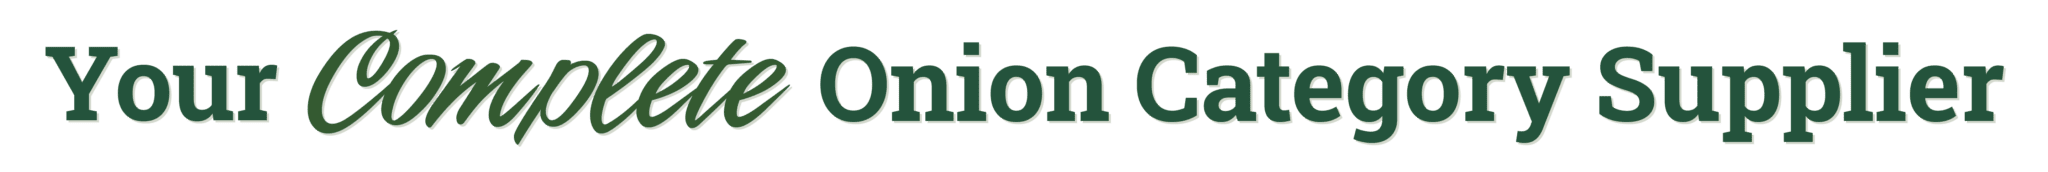 Your Complete Onion Category Supplier